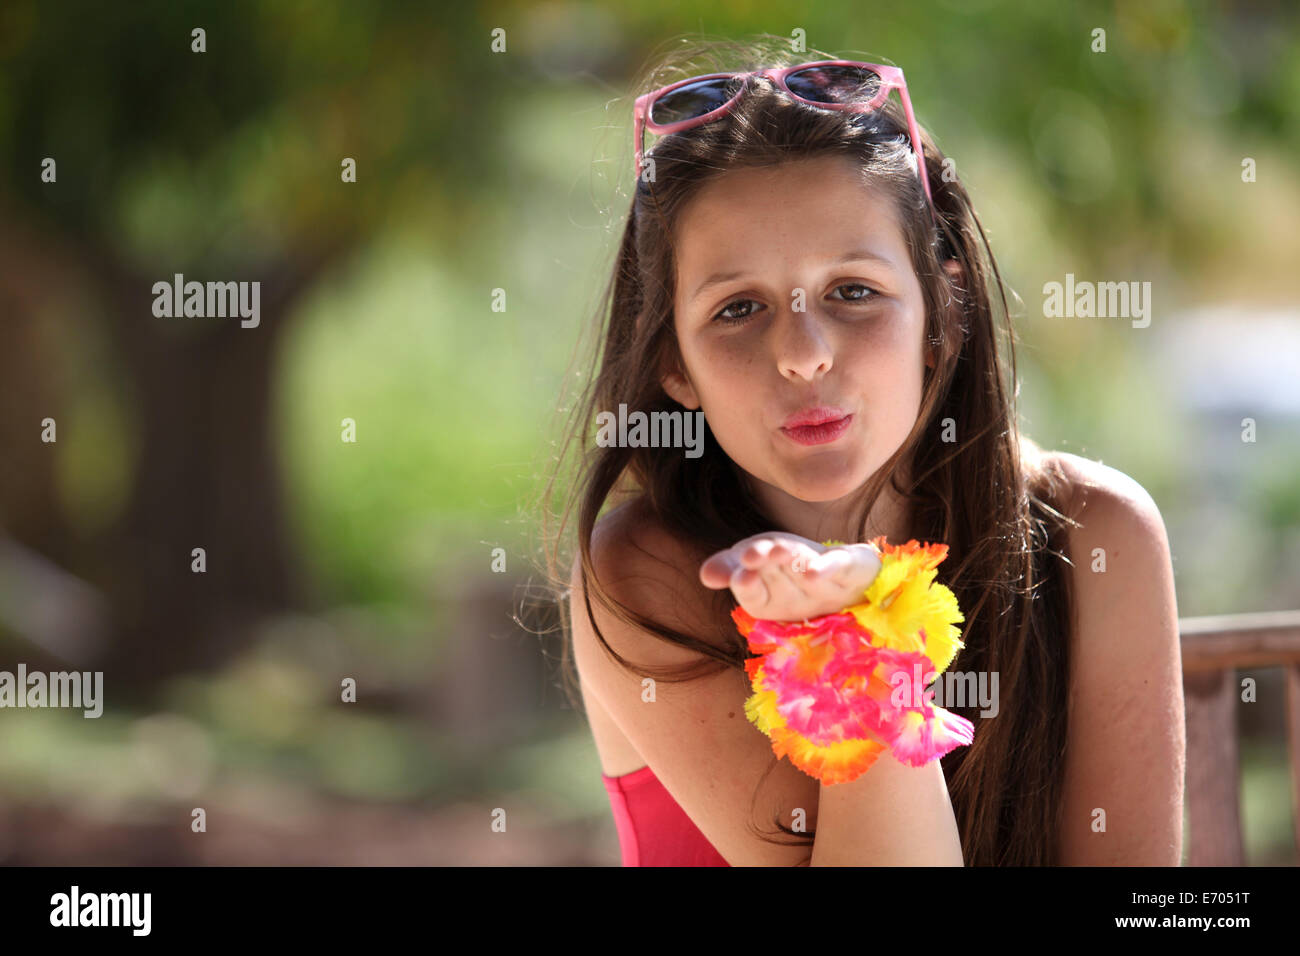 Portrait of a girl in park blowing a kiss - Stock Image